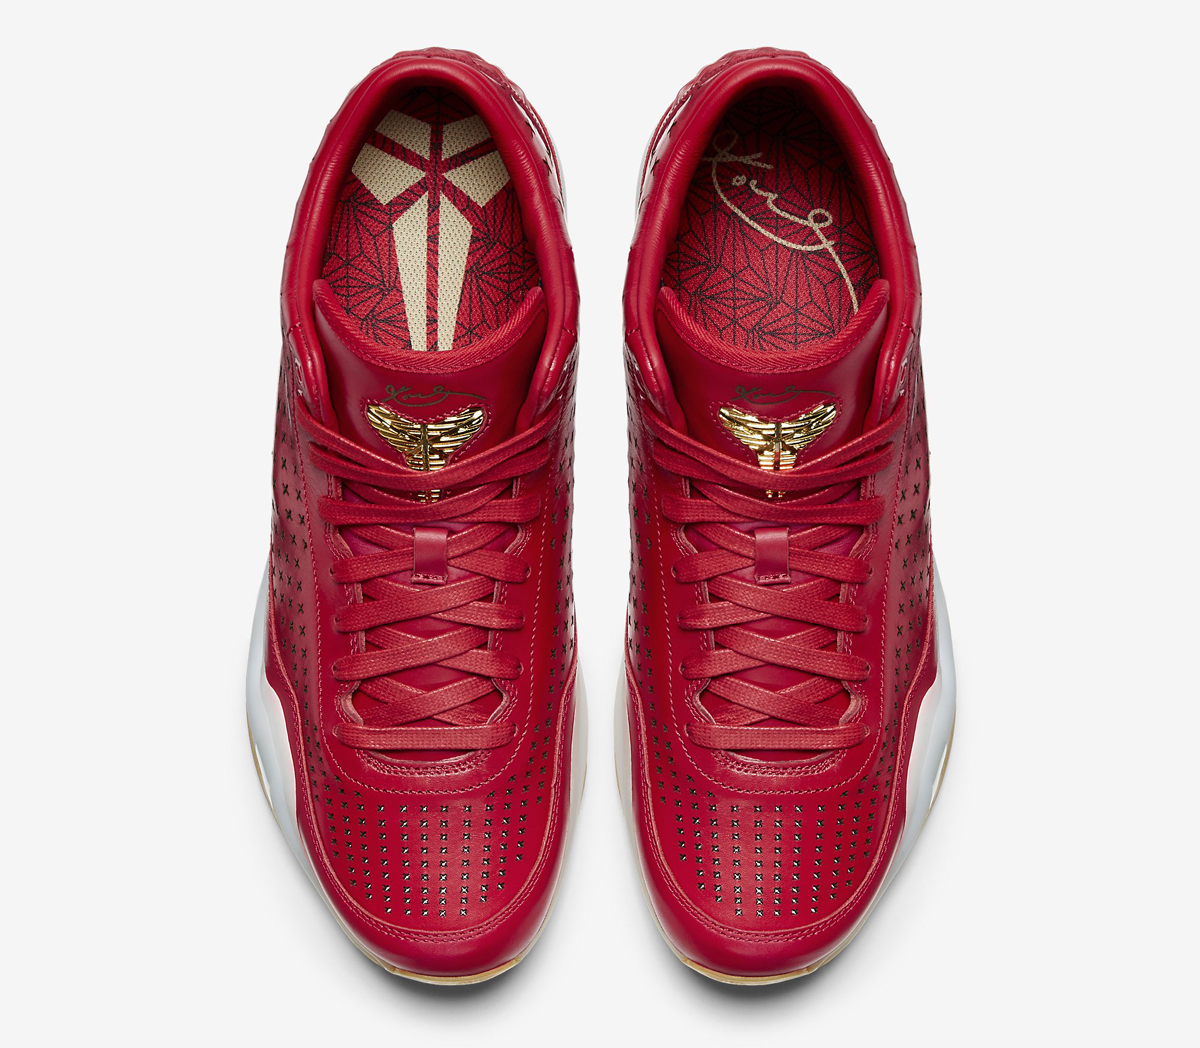 newest 91fbc e2e7a Nike Kobe 10 EXT Mid Color  University Red Metallic Gold Style     802366-600. Price   225